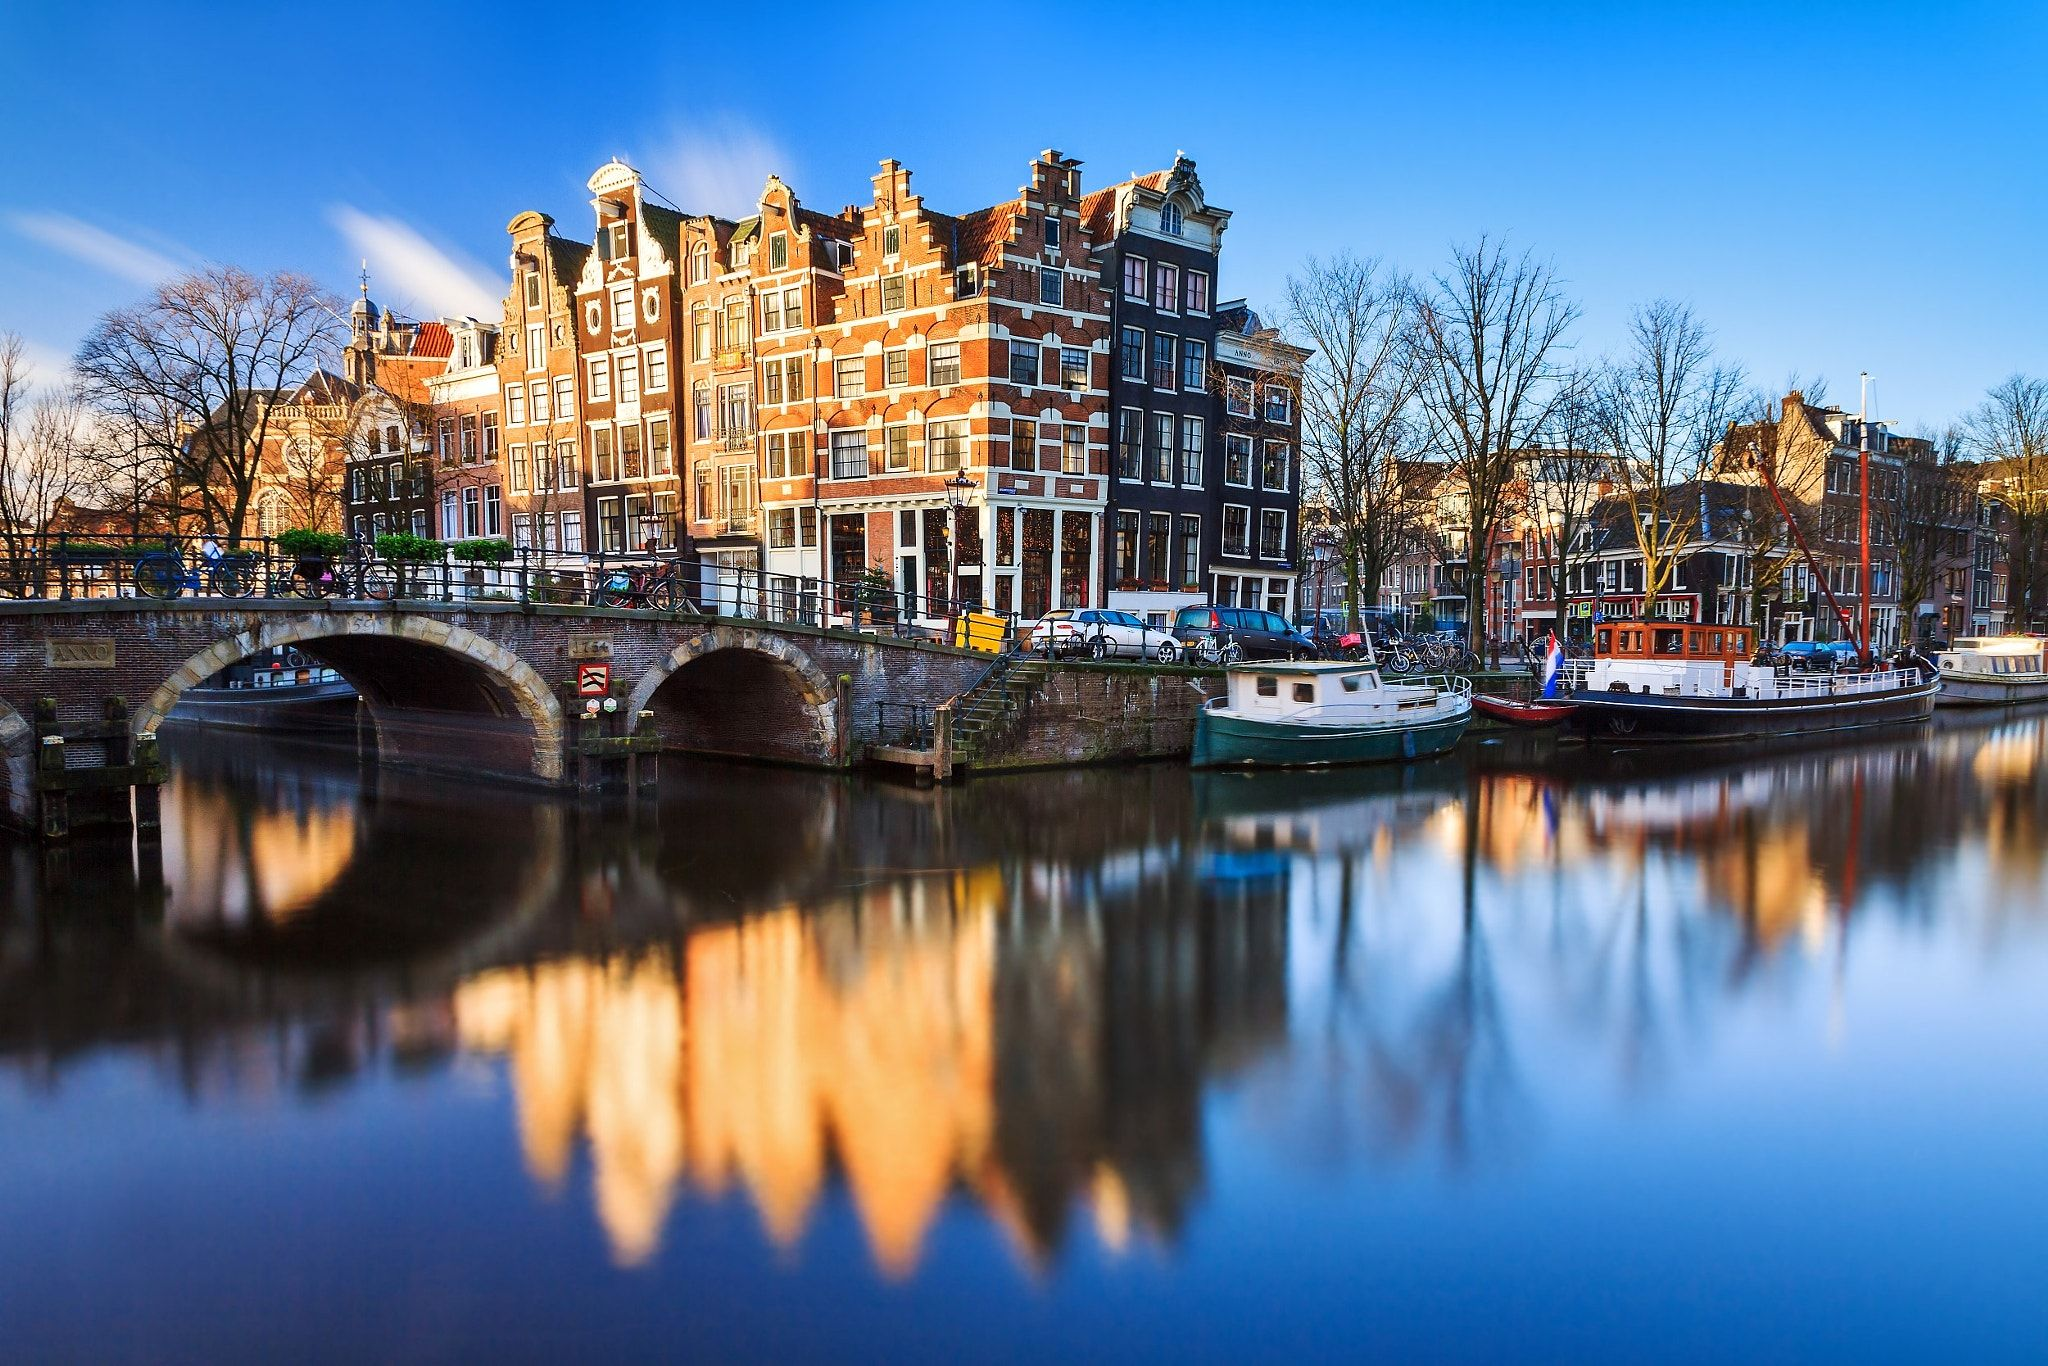 Amsterdam Brouwersgracht - Just 5 minutes from my home are the famous canals of Amsterdam. This is a long exposure of one of the most photographed spots on the canals at the 'Brouwersgracht' ;)